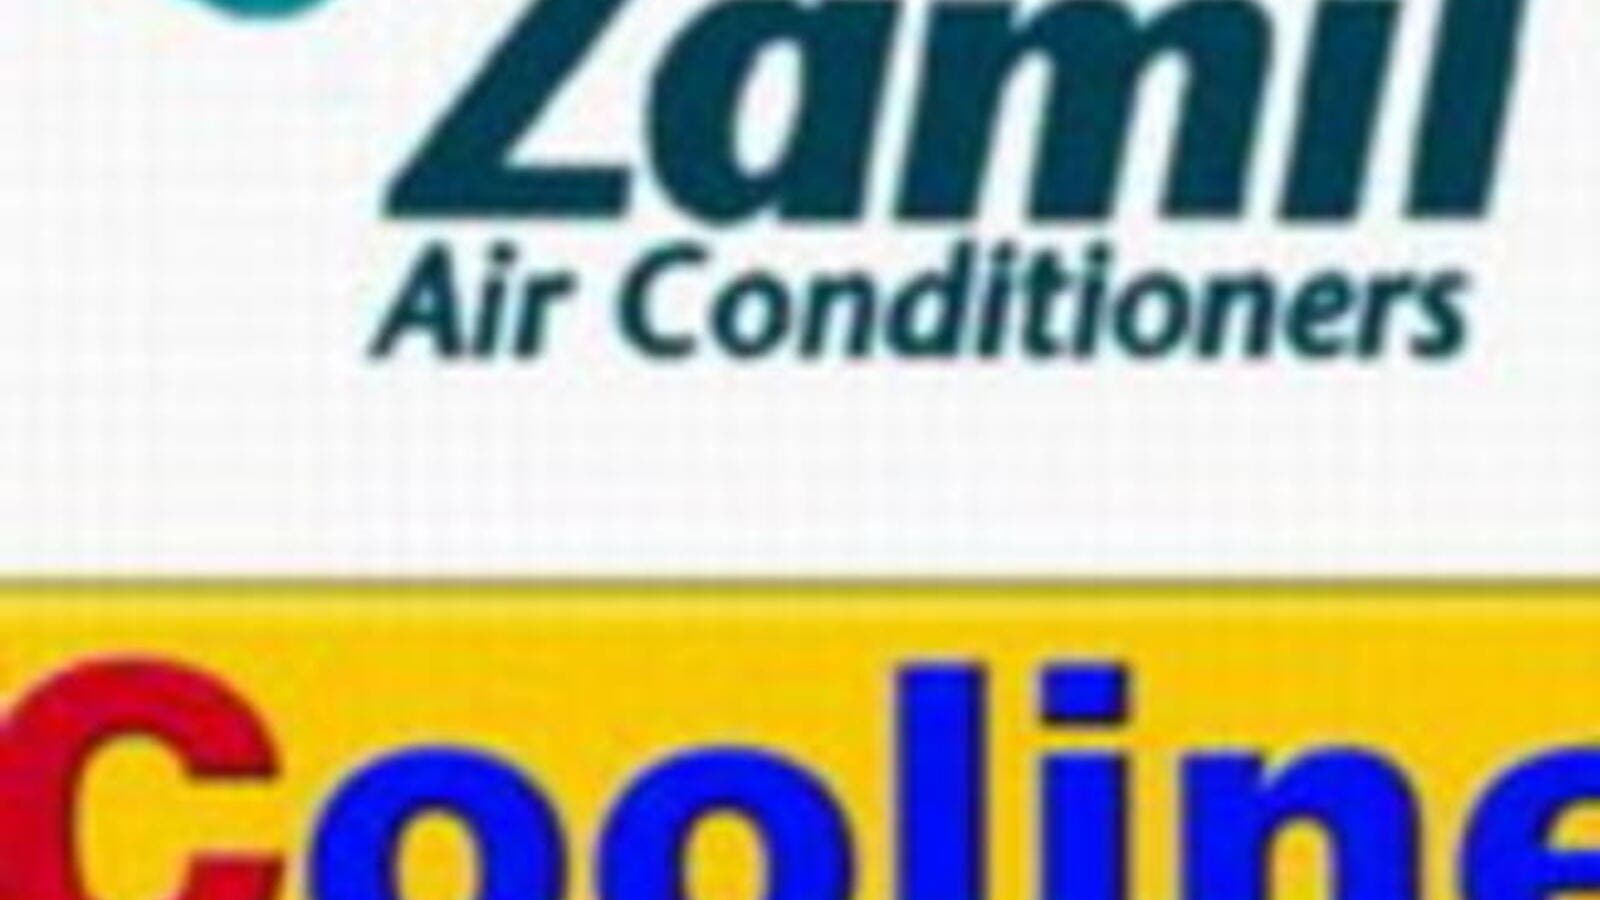 Zamil Air Conditioners awarded new projects in Saudi Arabia